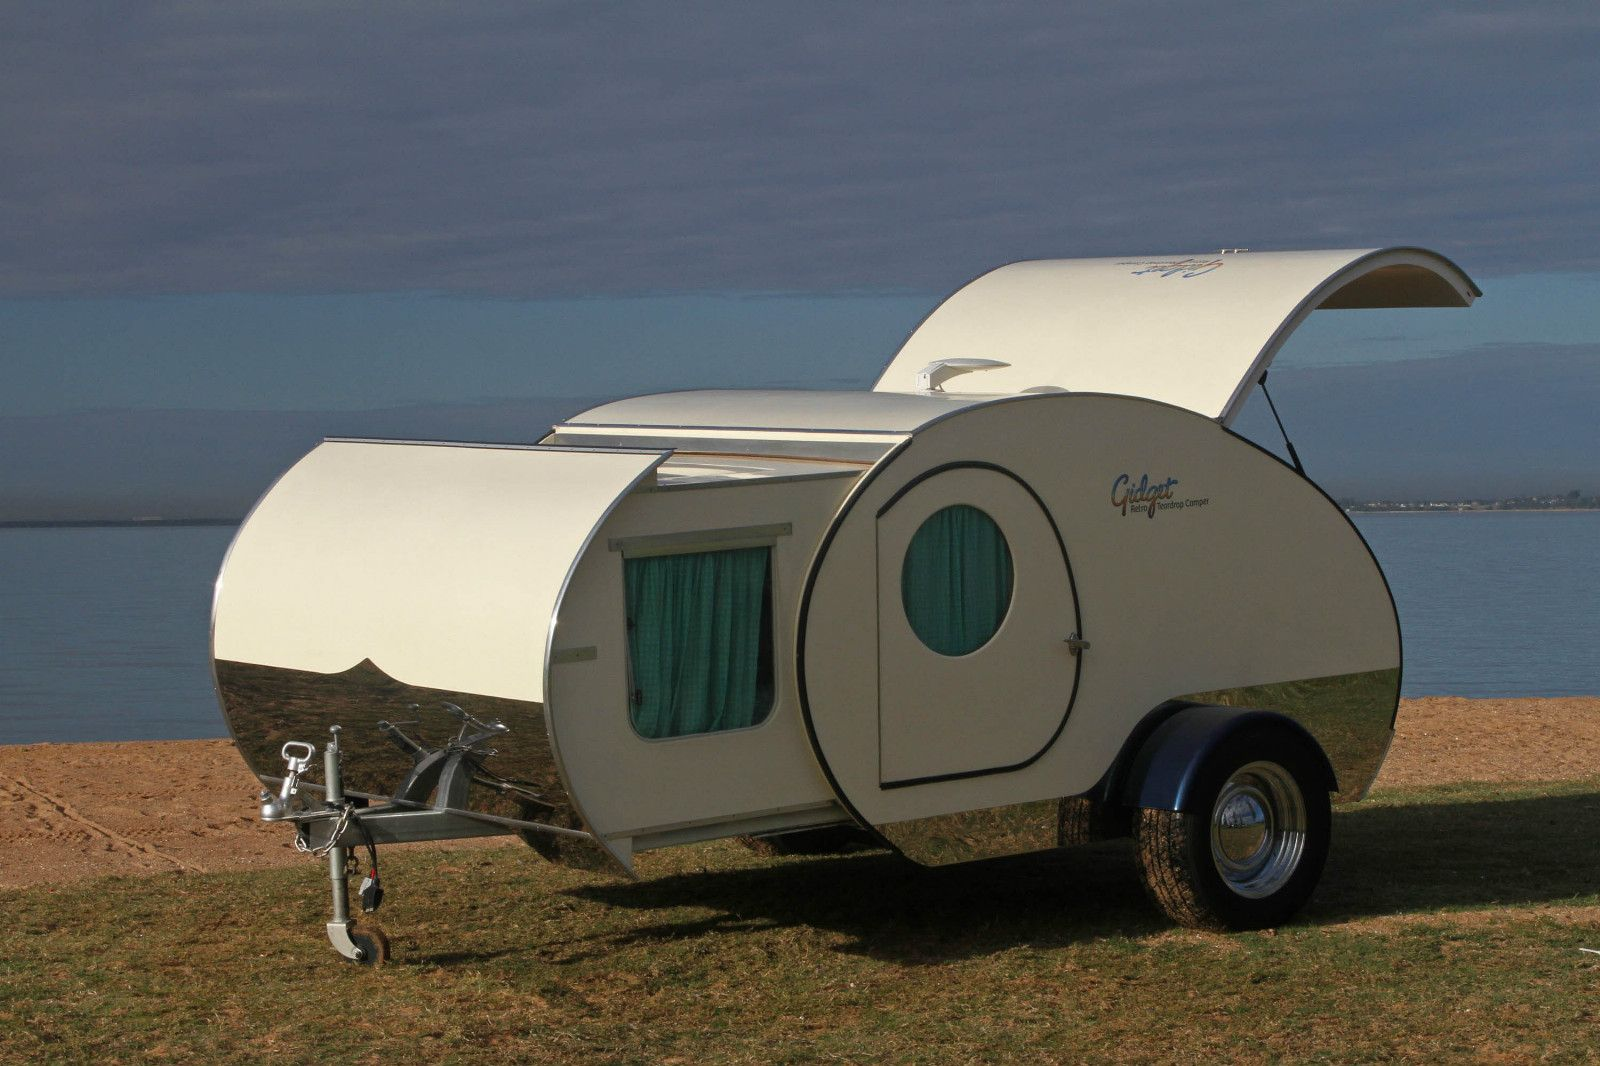 Gidget Retro Teardrop Camper Trailer Extended Will Wait For This To Be Available In Usa